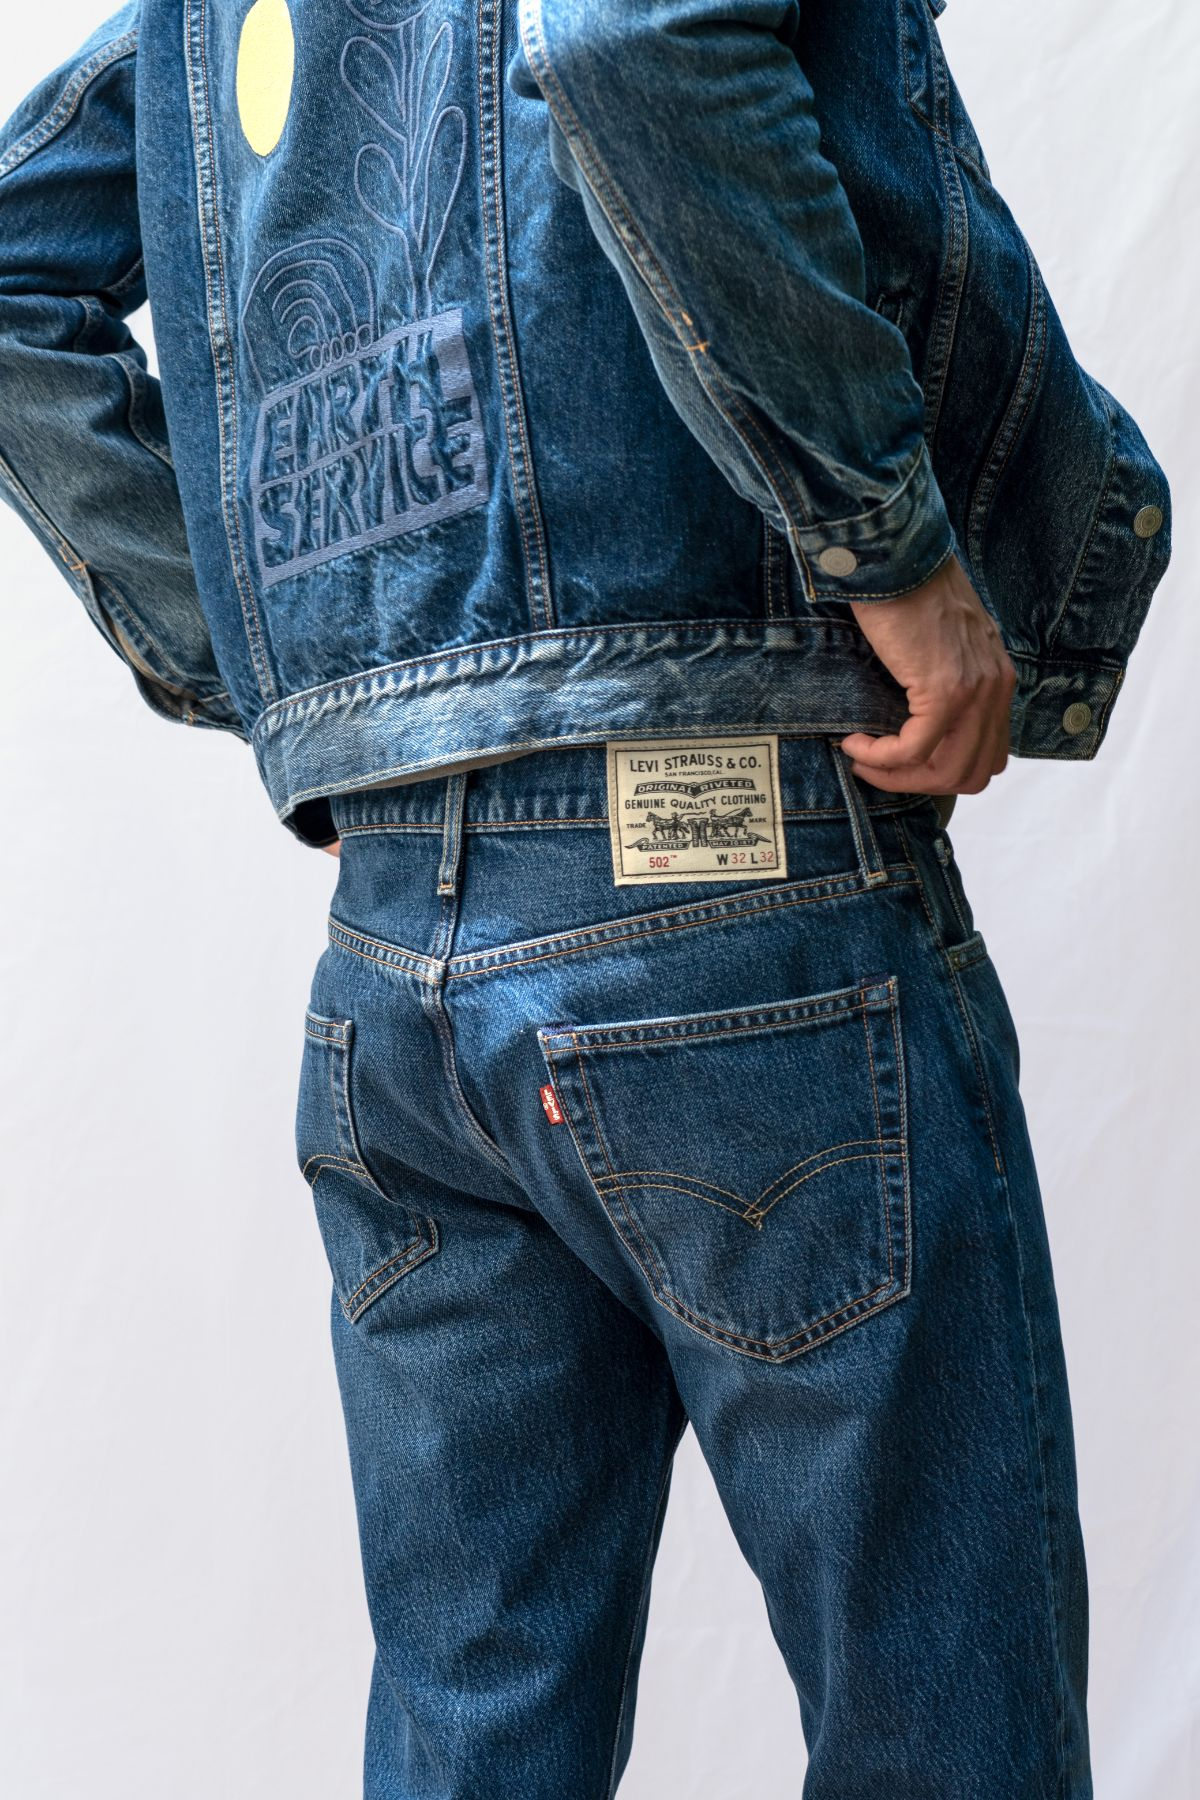 Levi's Creates its Most Sustainable Jeans Ever